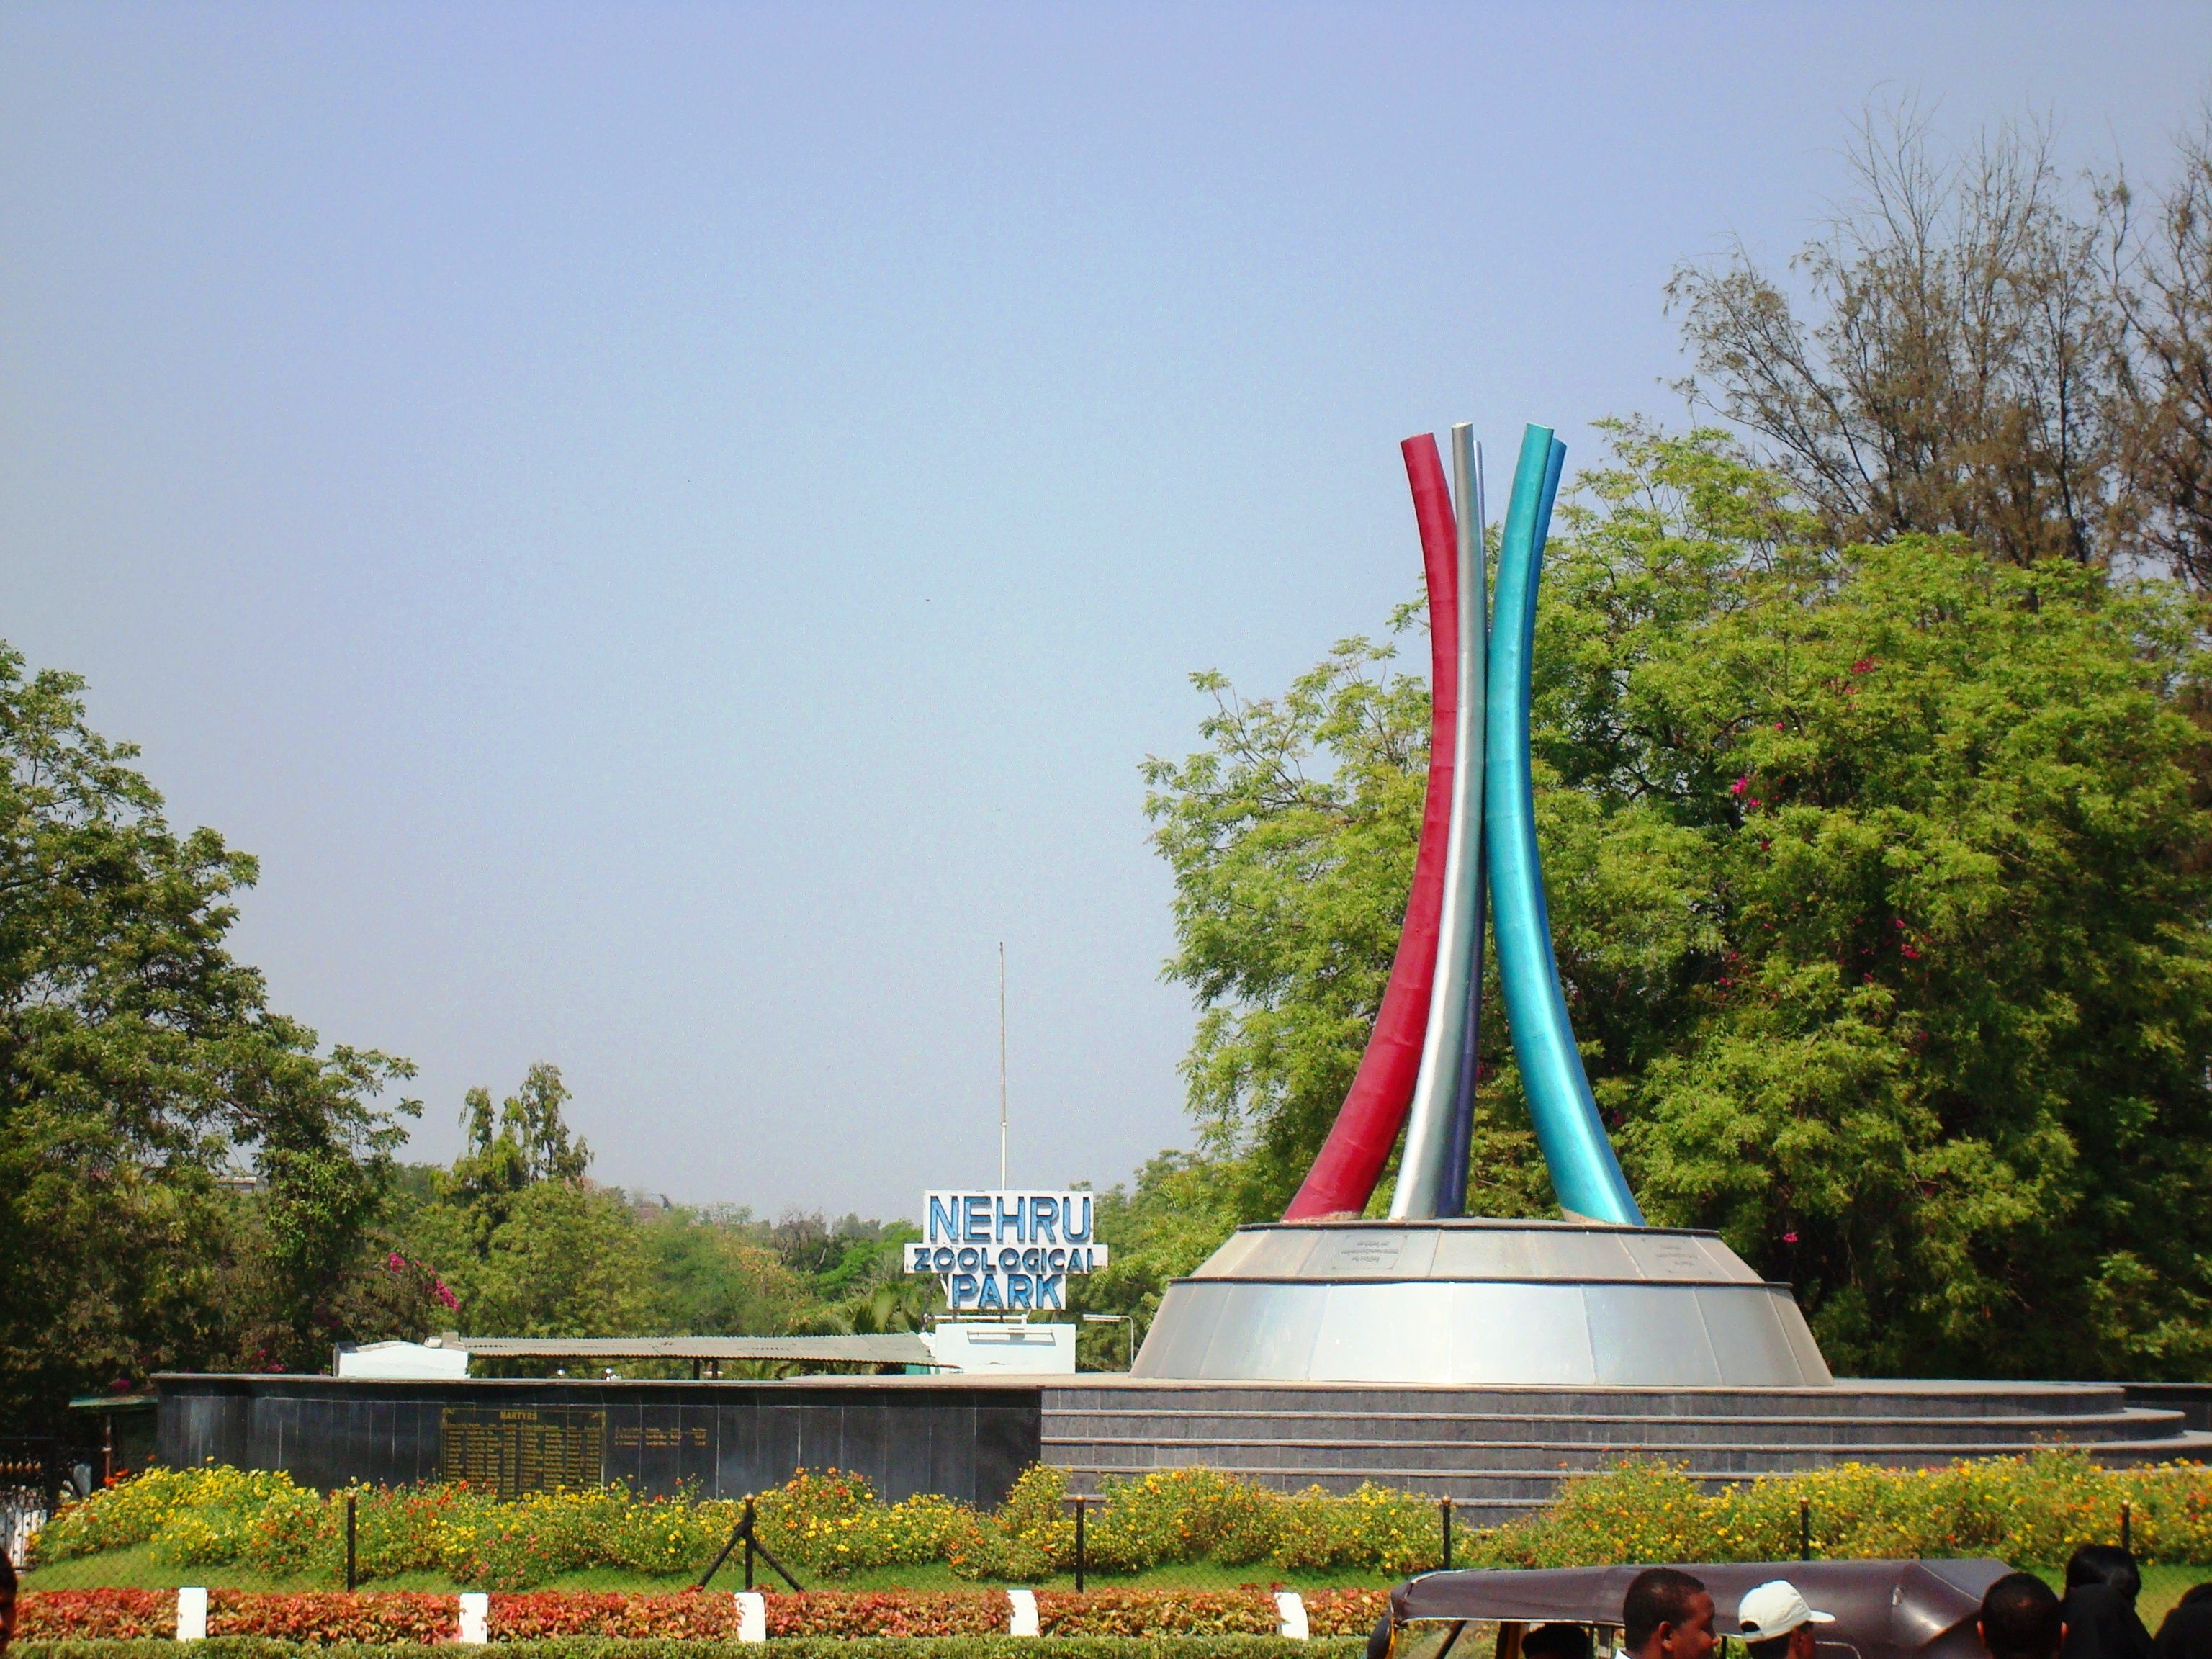 Nehru Zoological Park in Hyderabad was established in 1959 and covers an area of over 380 acres.